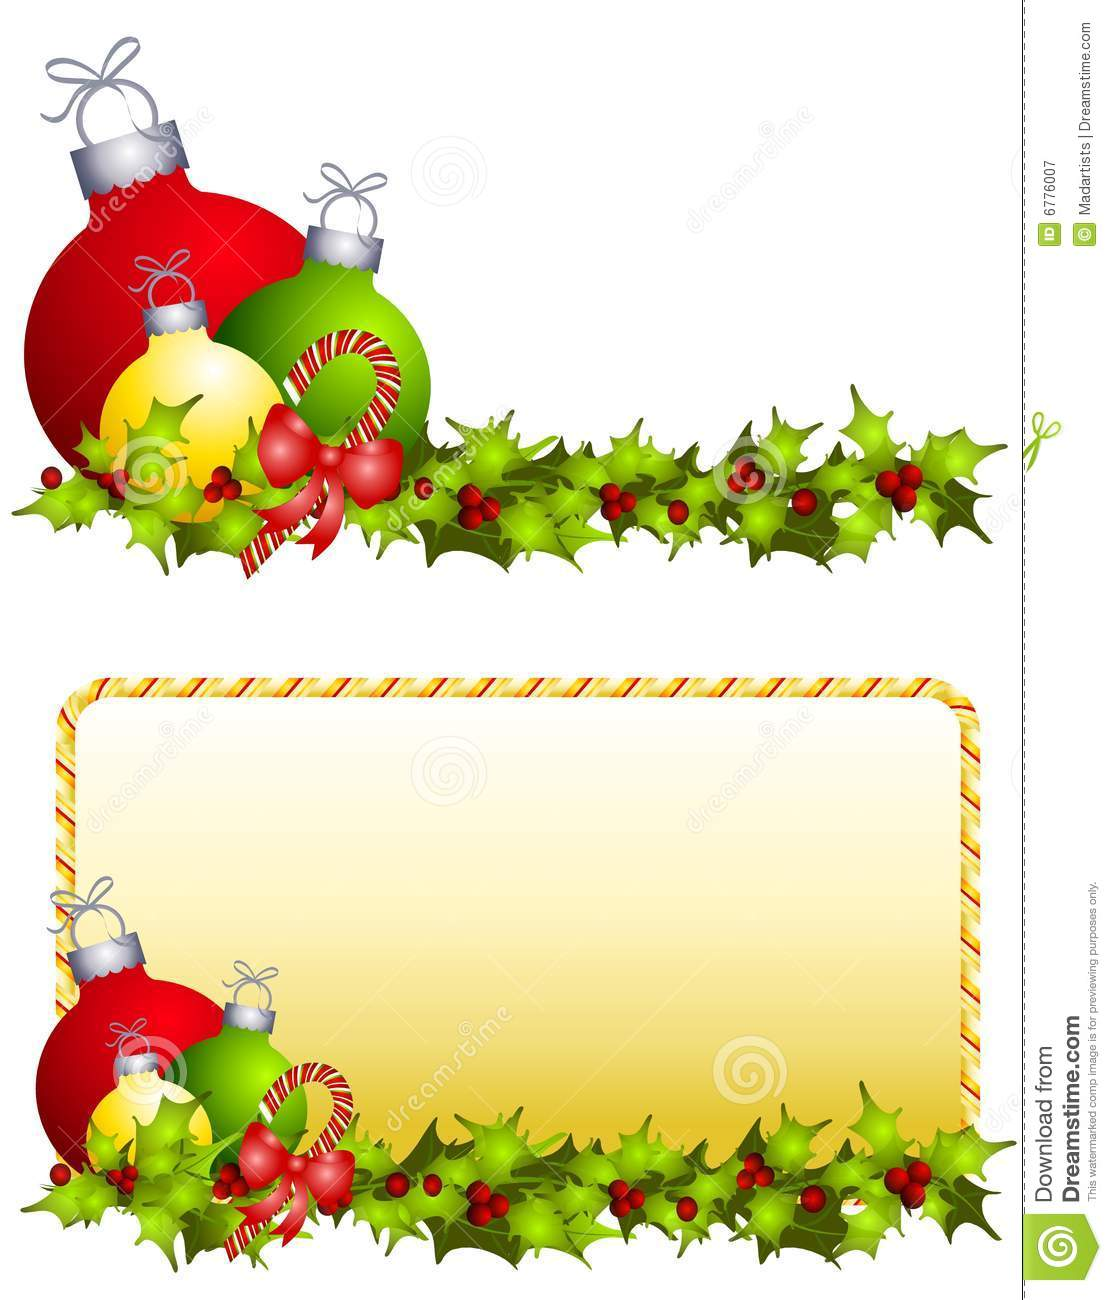 Holly christmas ornaments - Candy Canes Christmas Holly Illustration Images Ornaments